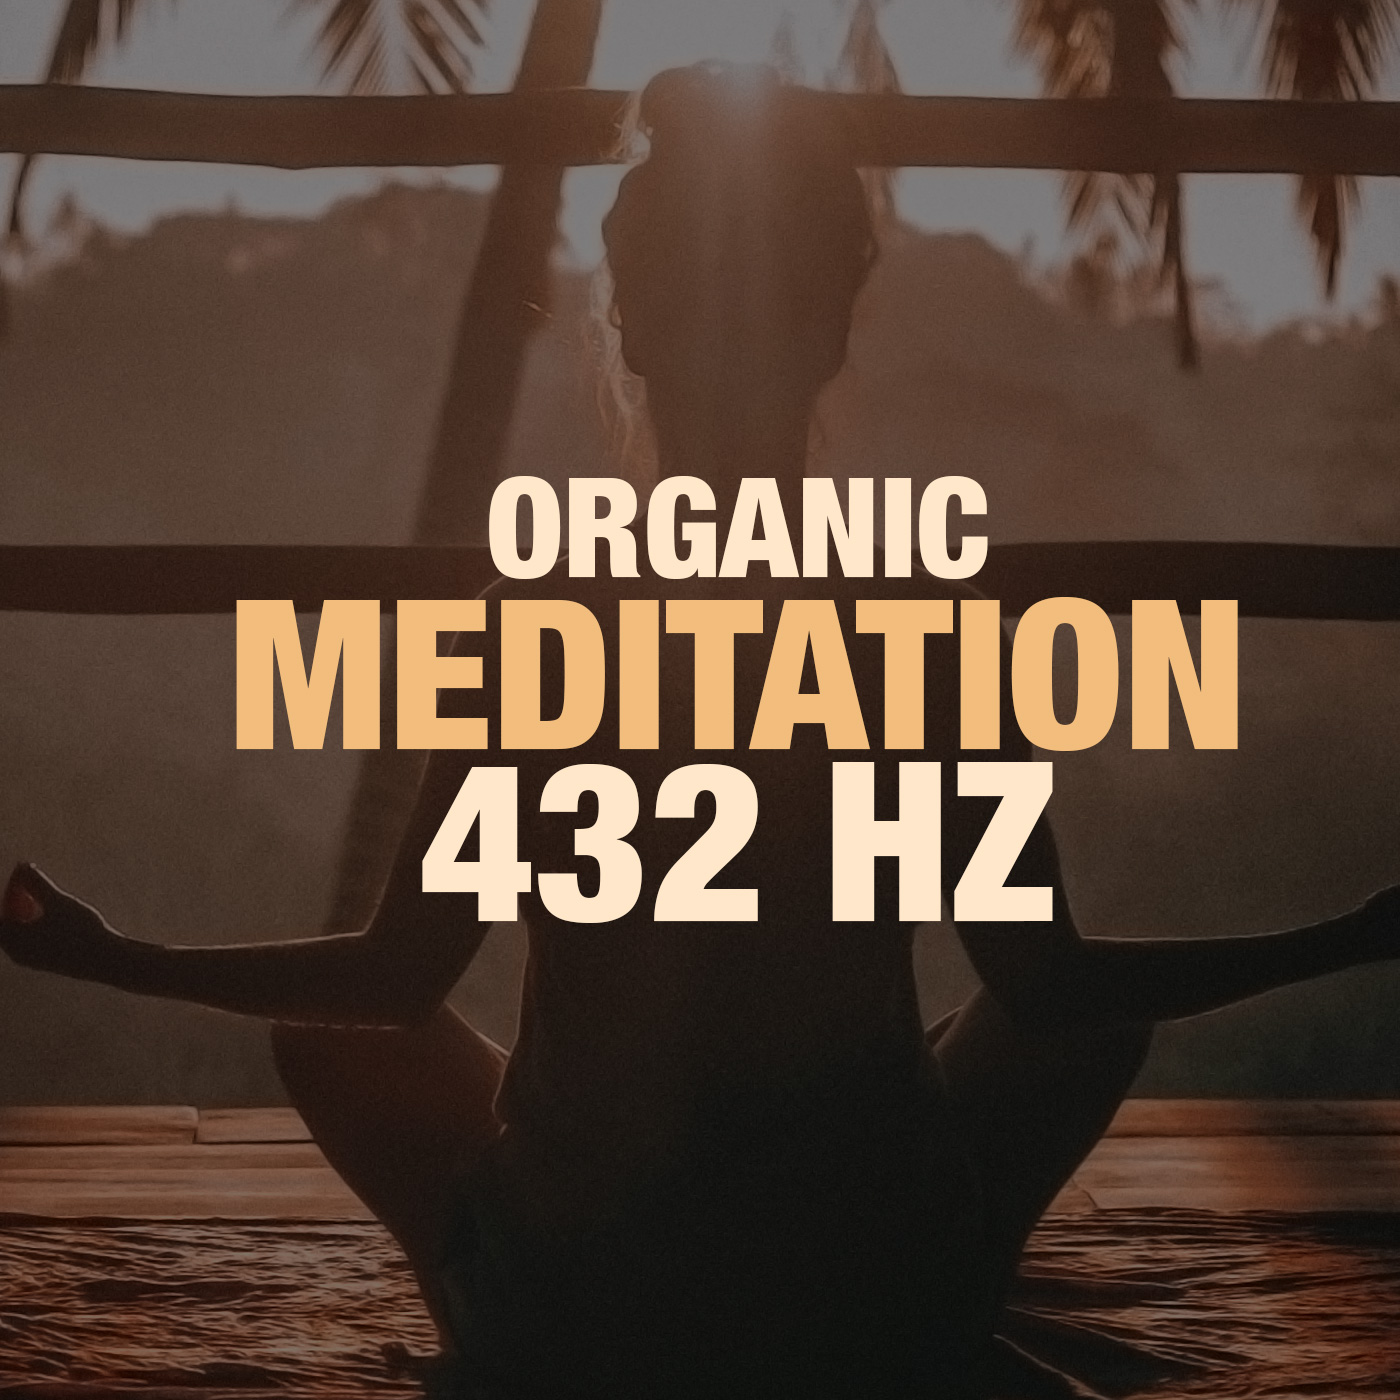 Organic Meditation in 432 Hz Tuning by SoundWizard - Free download